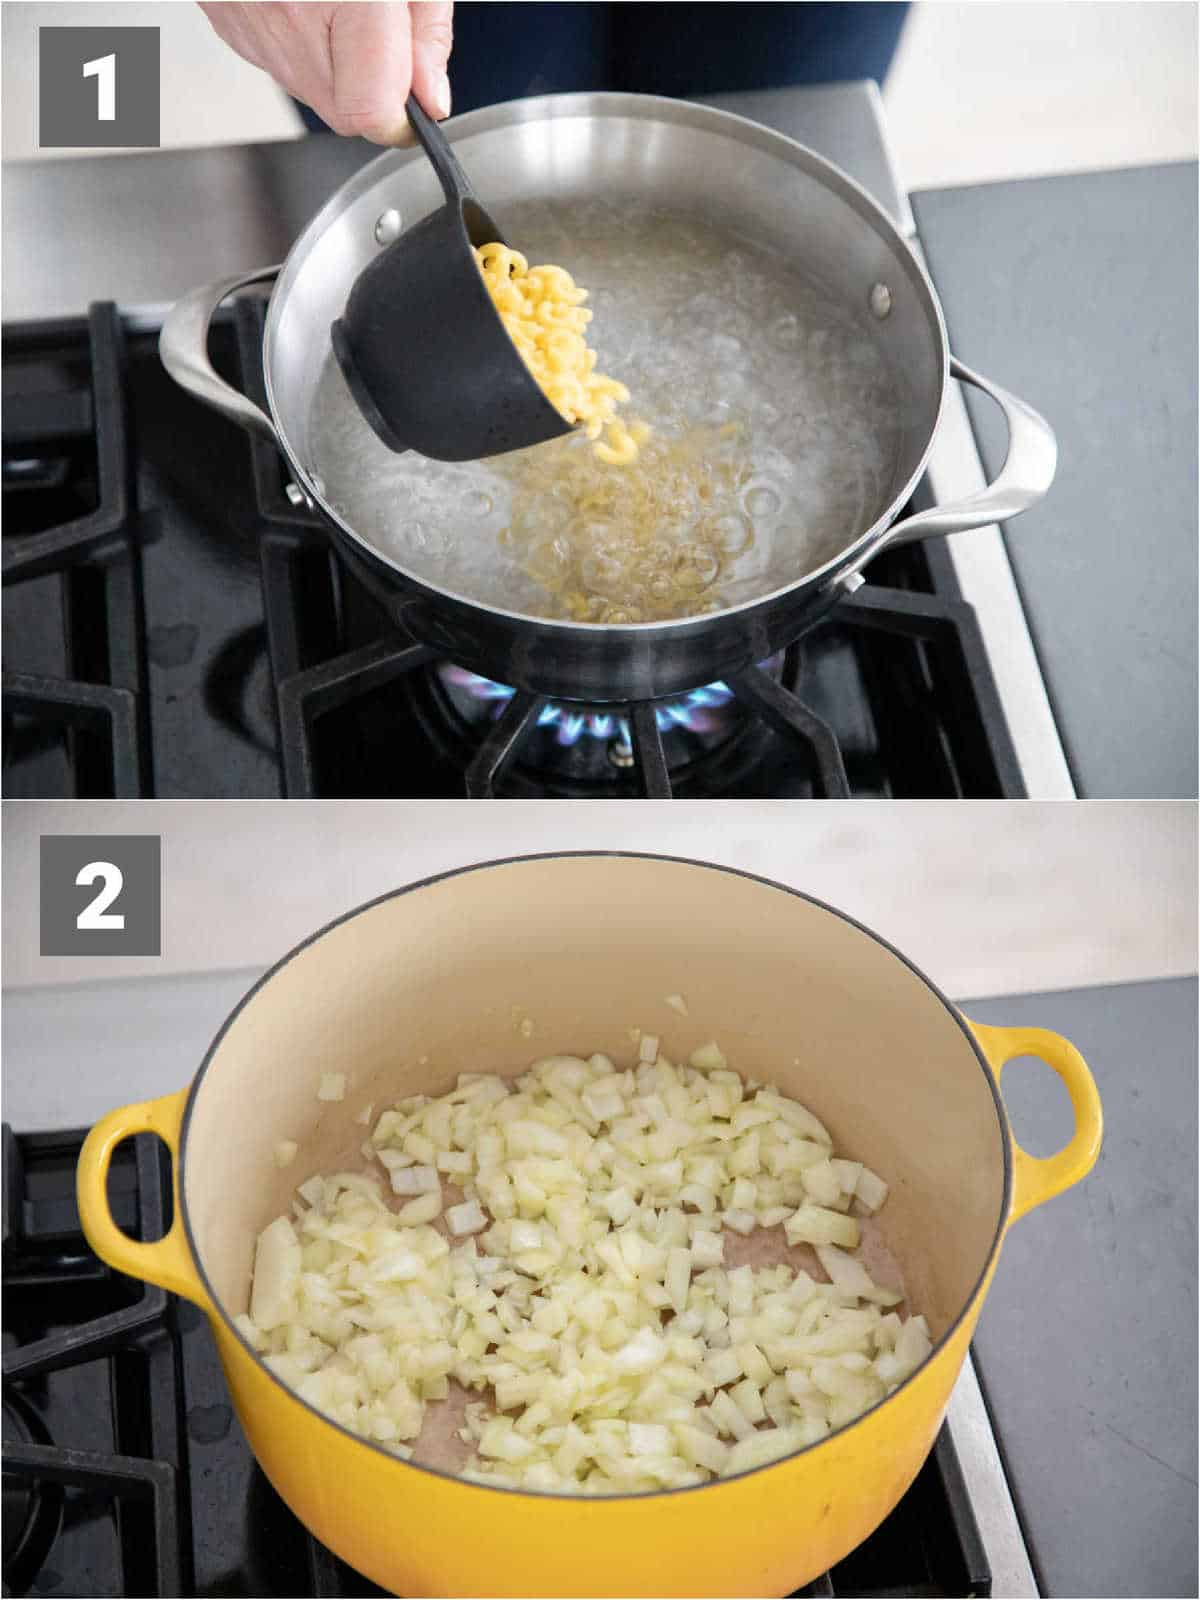 cooking the pasta and cooking the onions